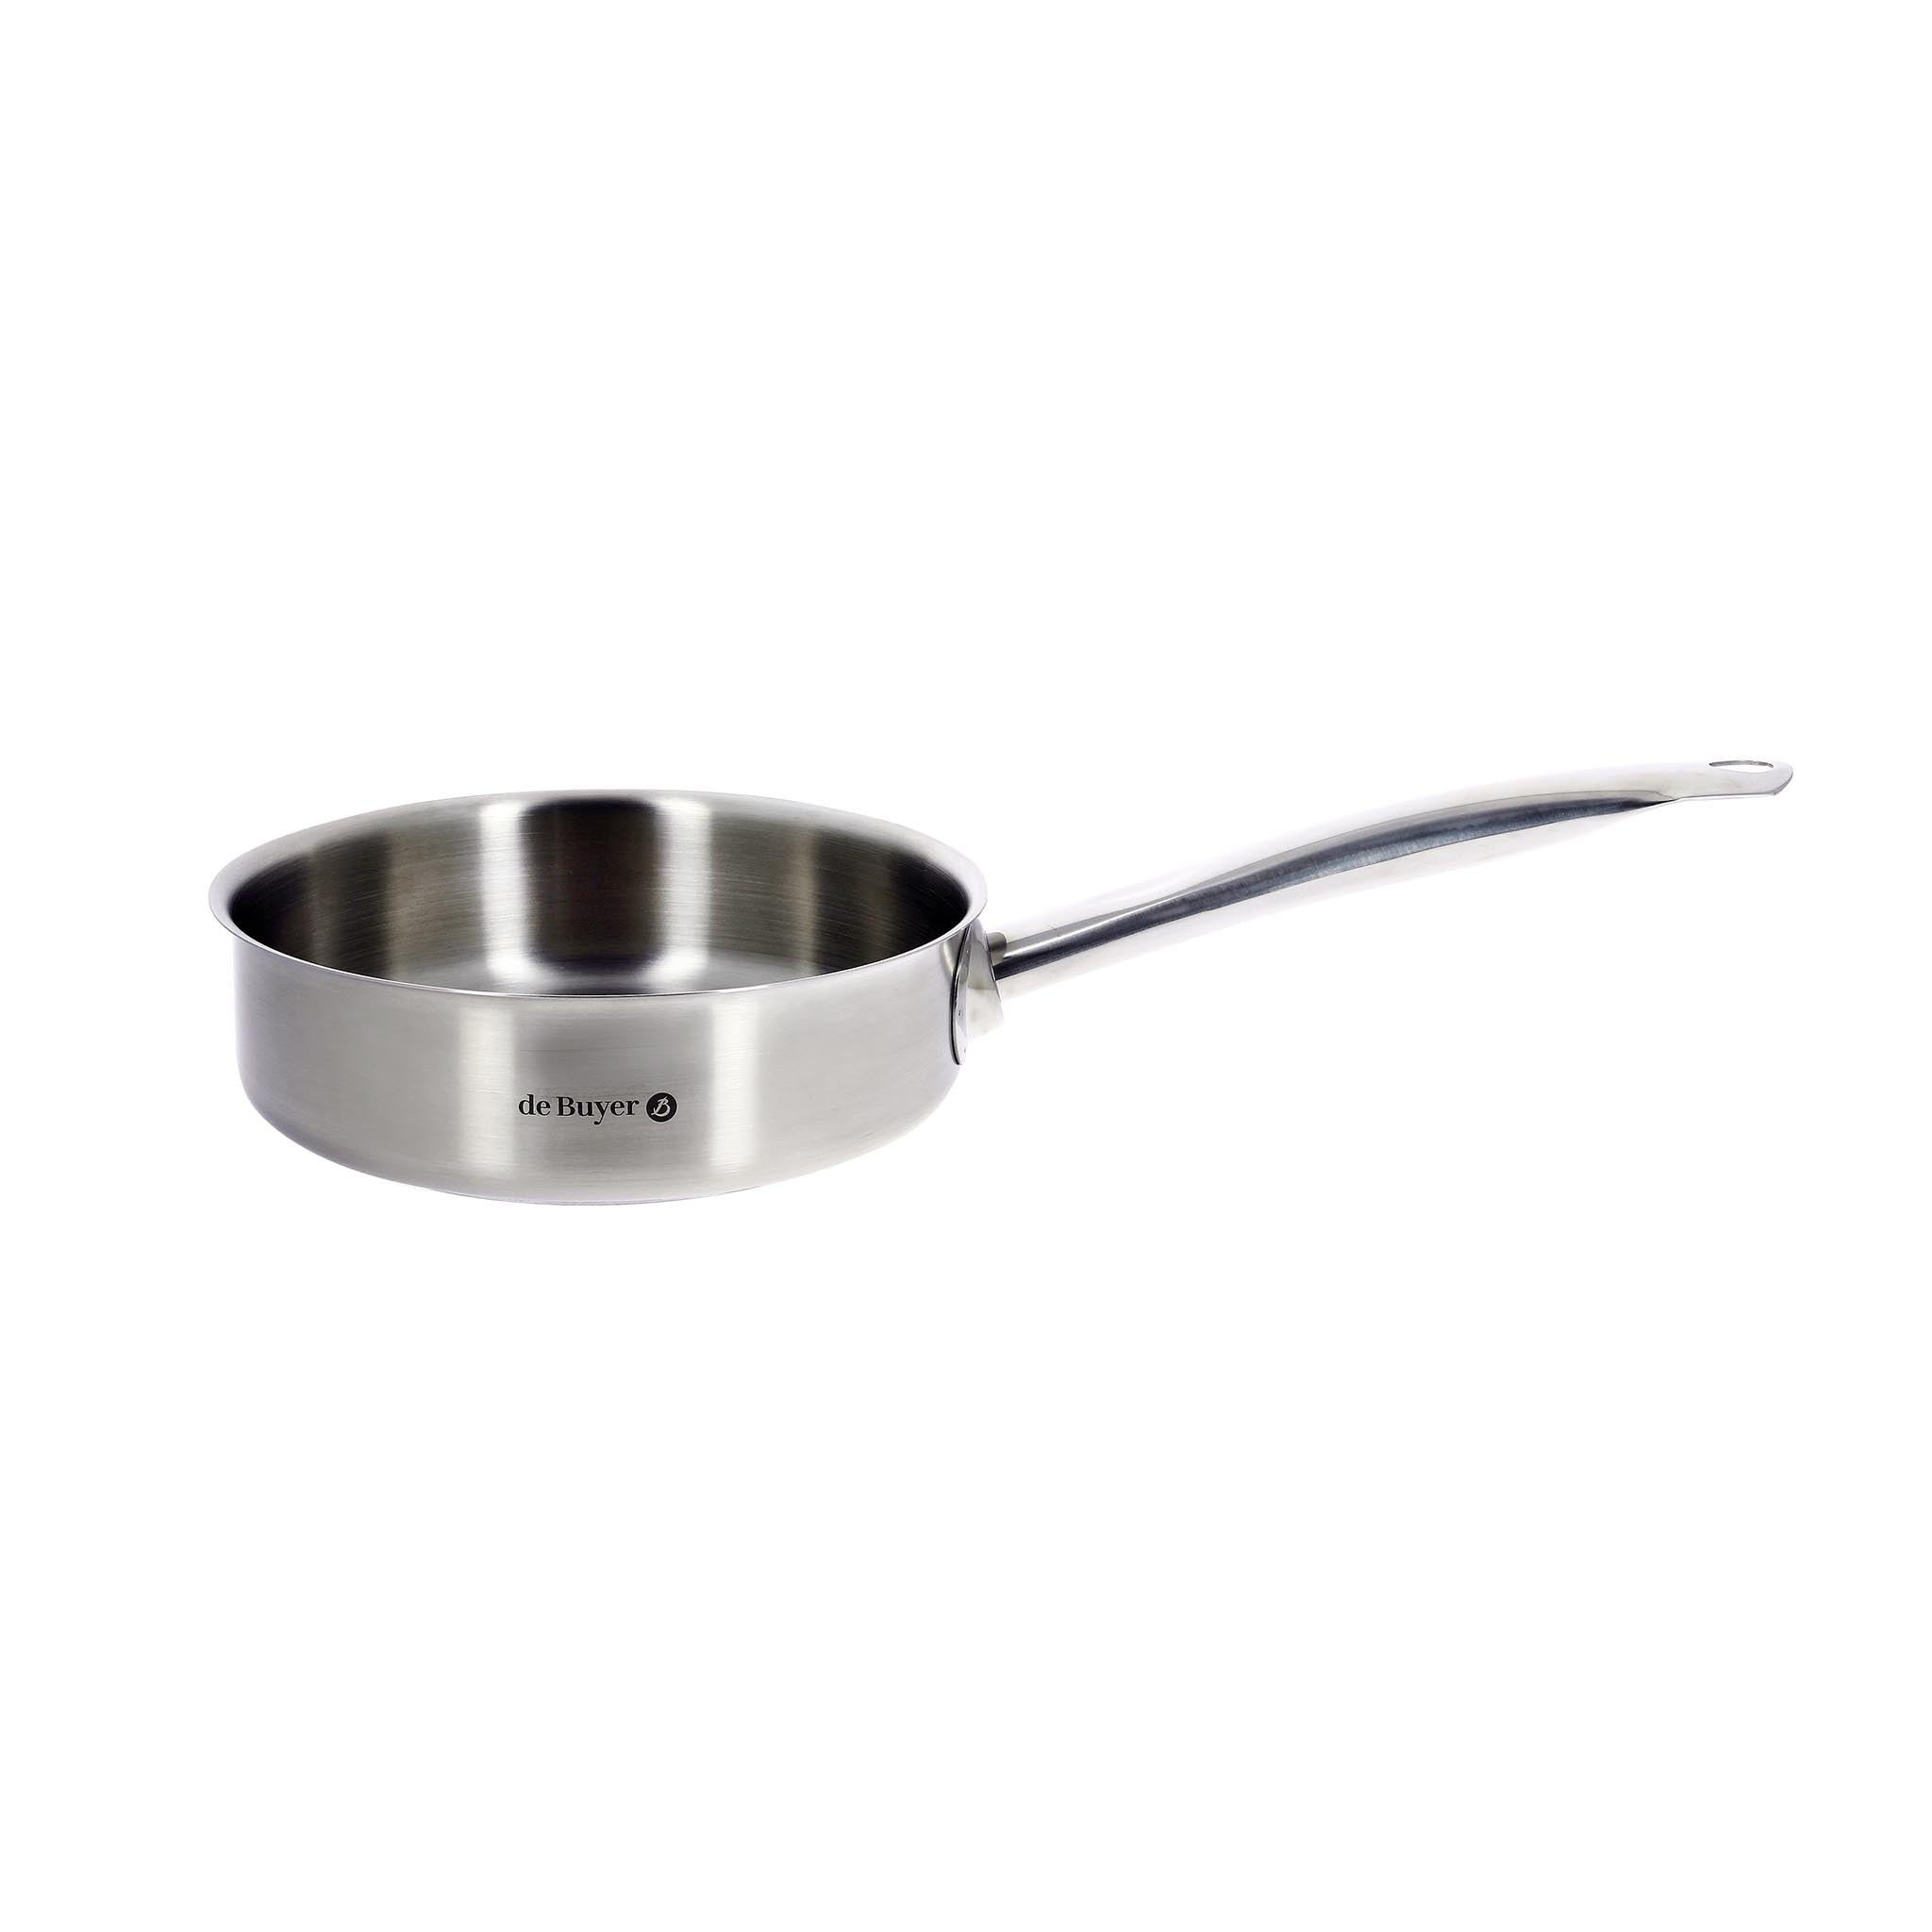 De Buyer Prim Appety Stainless Steel Saute Pan 28cm Cookware Pots & Pans French Food